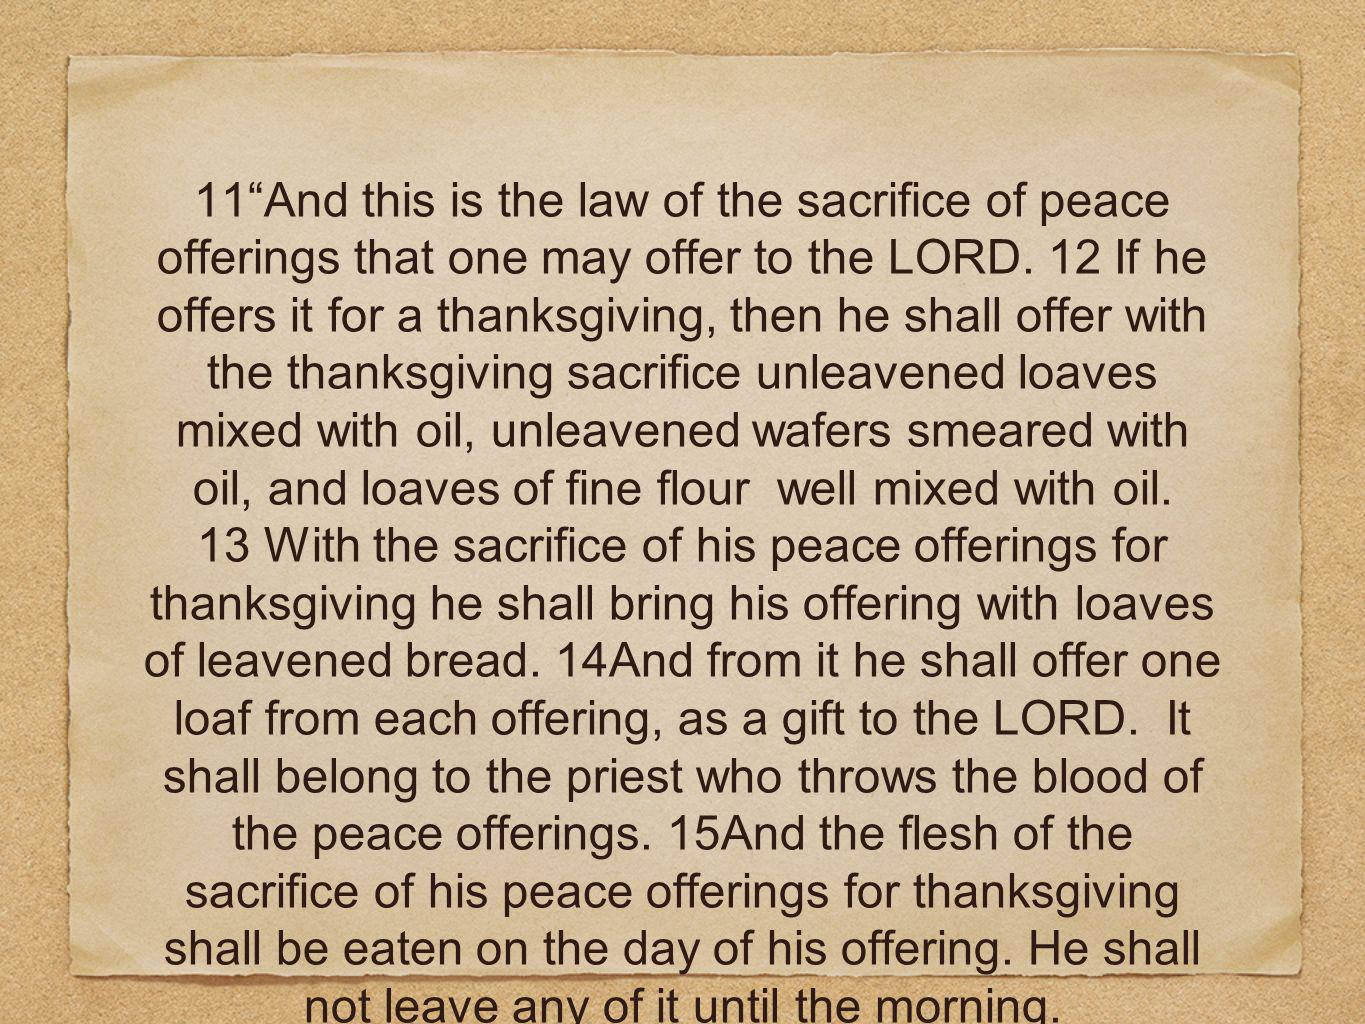 11And this is the law of the sacrifice of peace offerings that one may offer to the LORD.